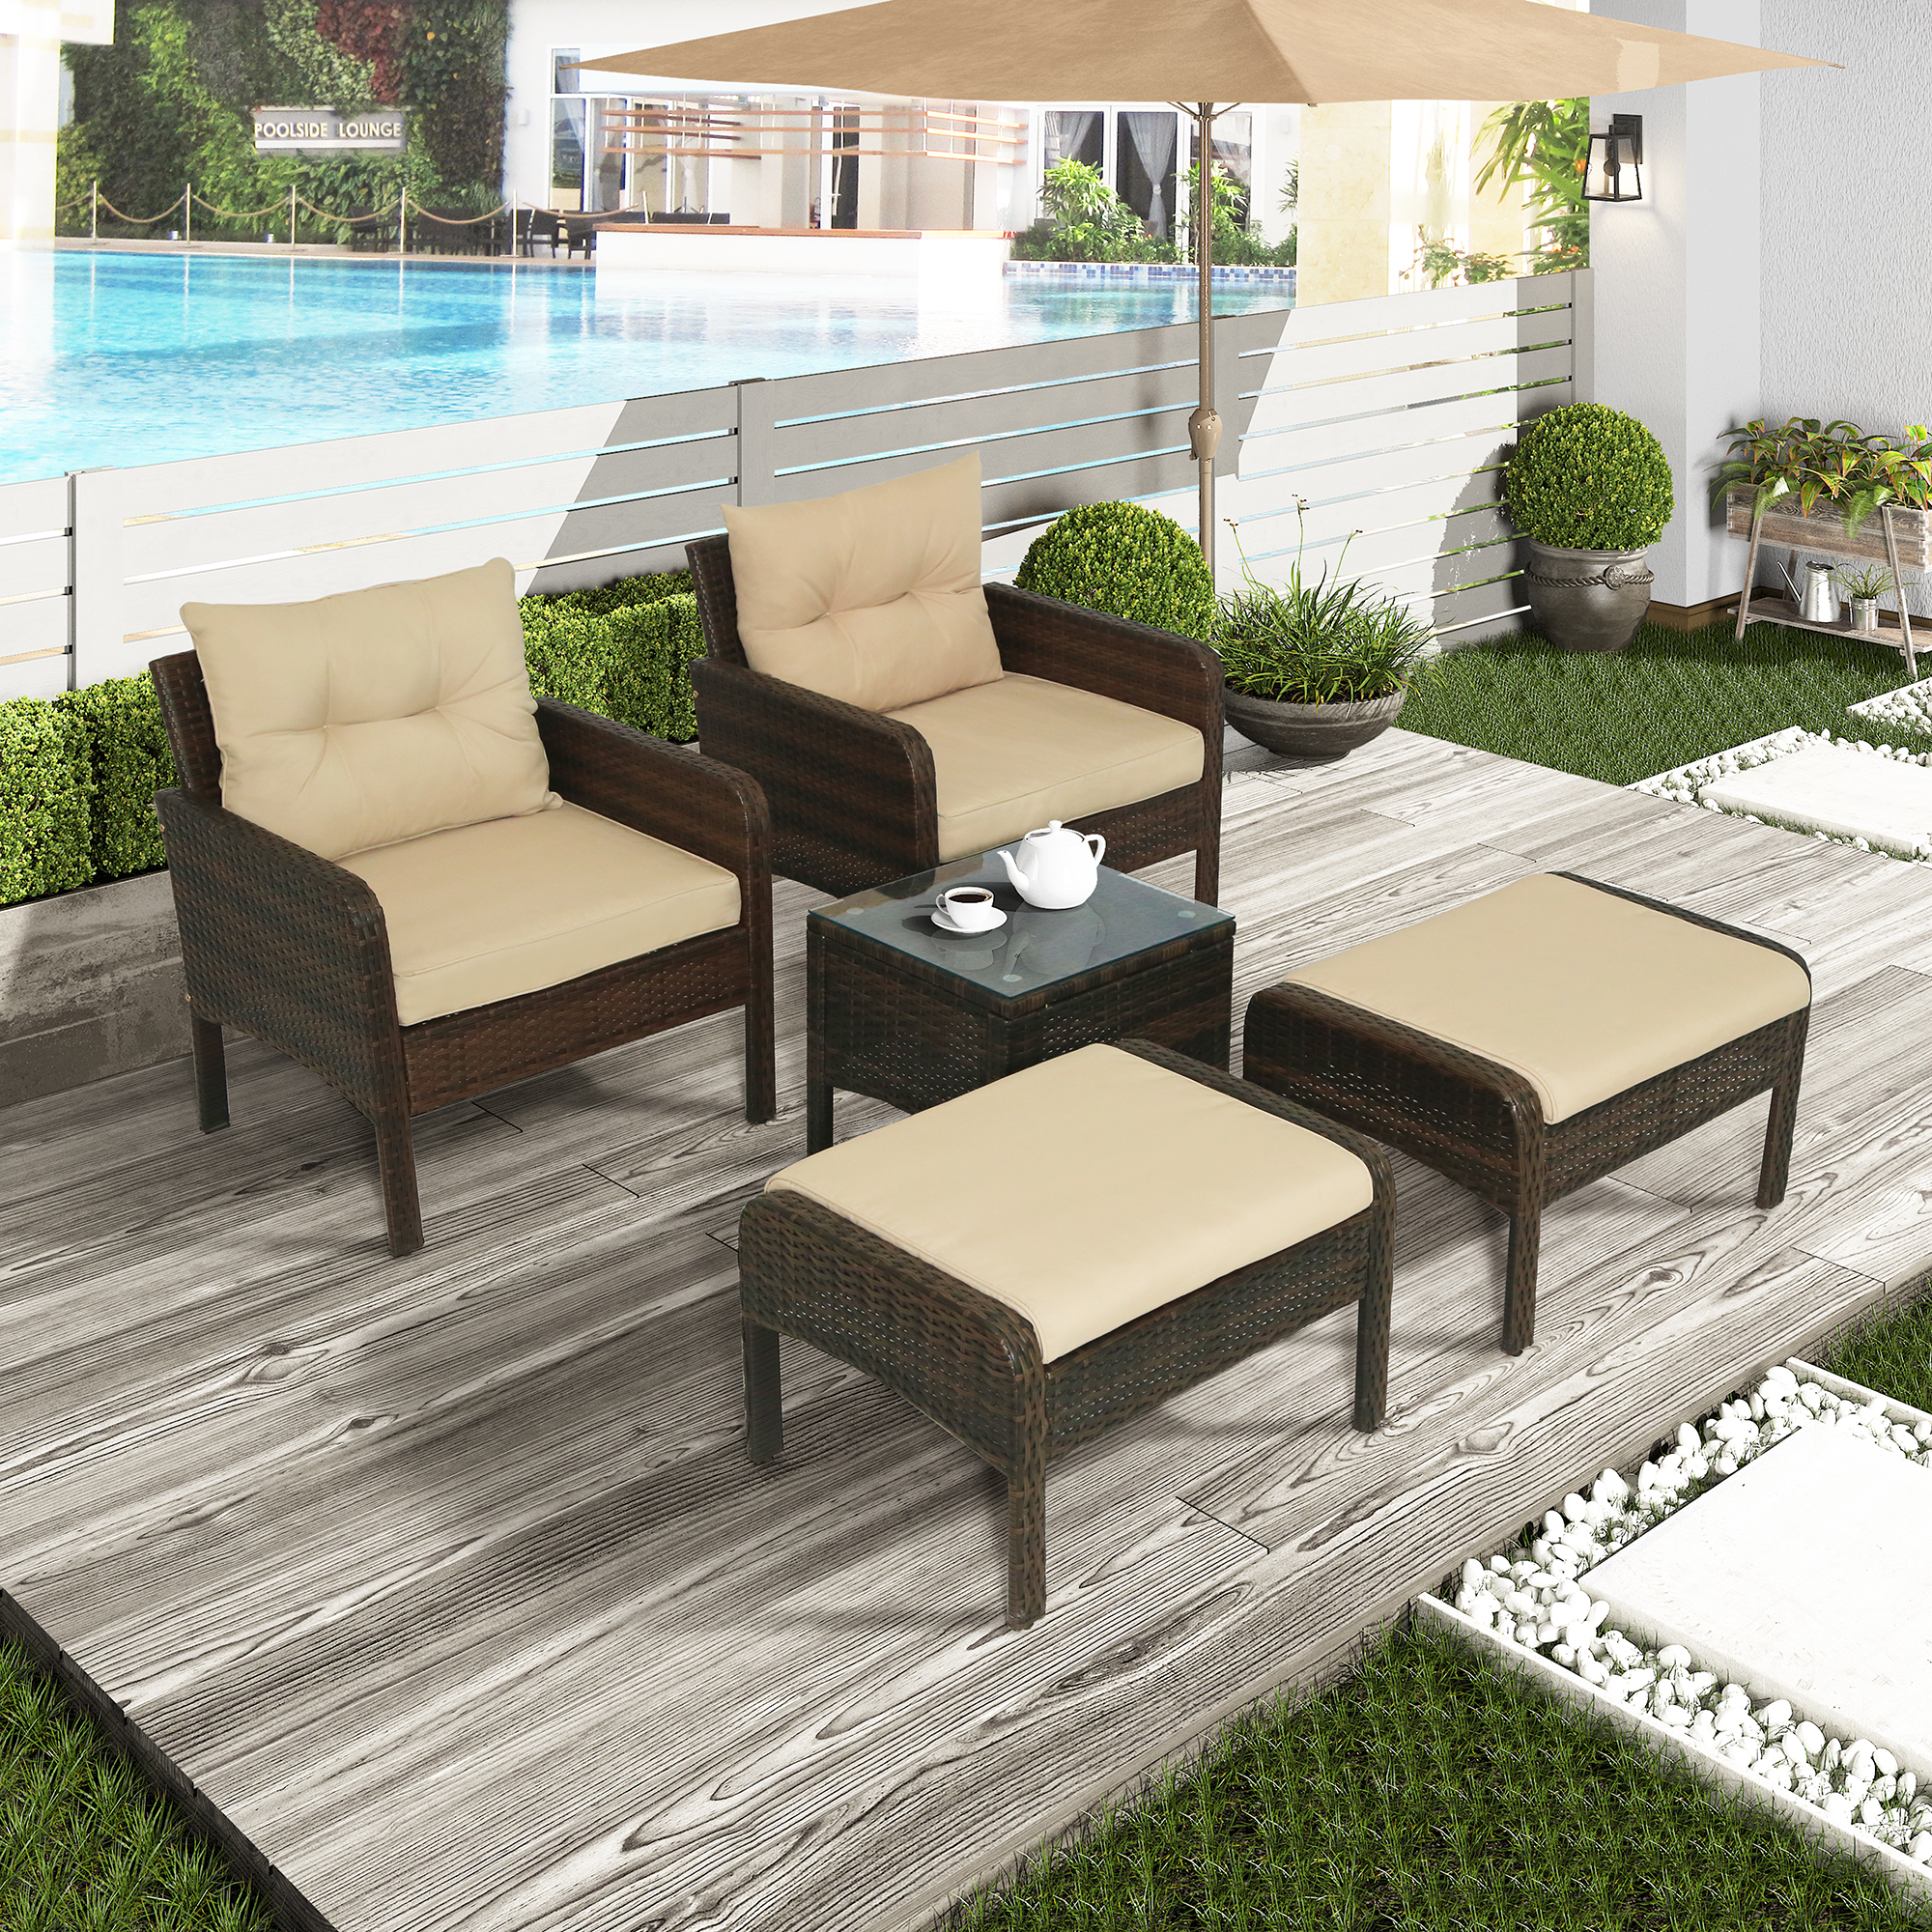 pe brown rattan sofa set of 5 outdoor patio chair and ottoman set with cushions tea table all weather wicker bistro set poolside conversation